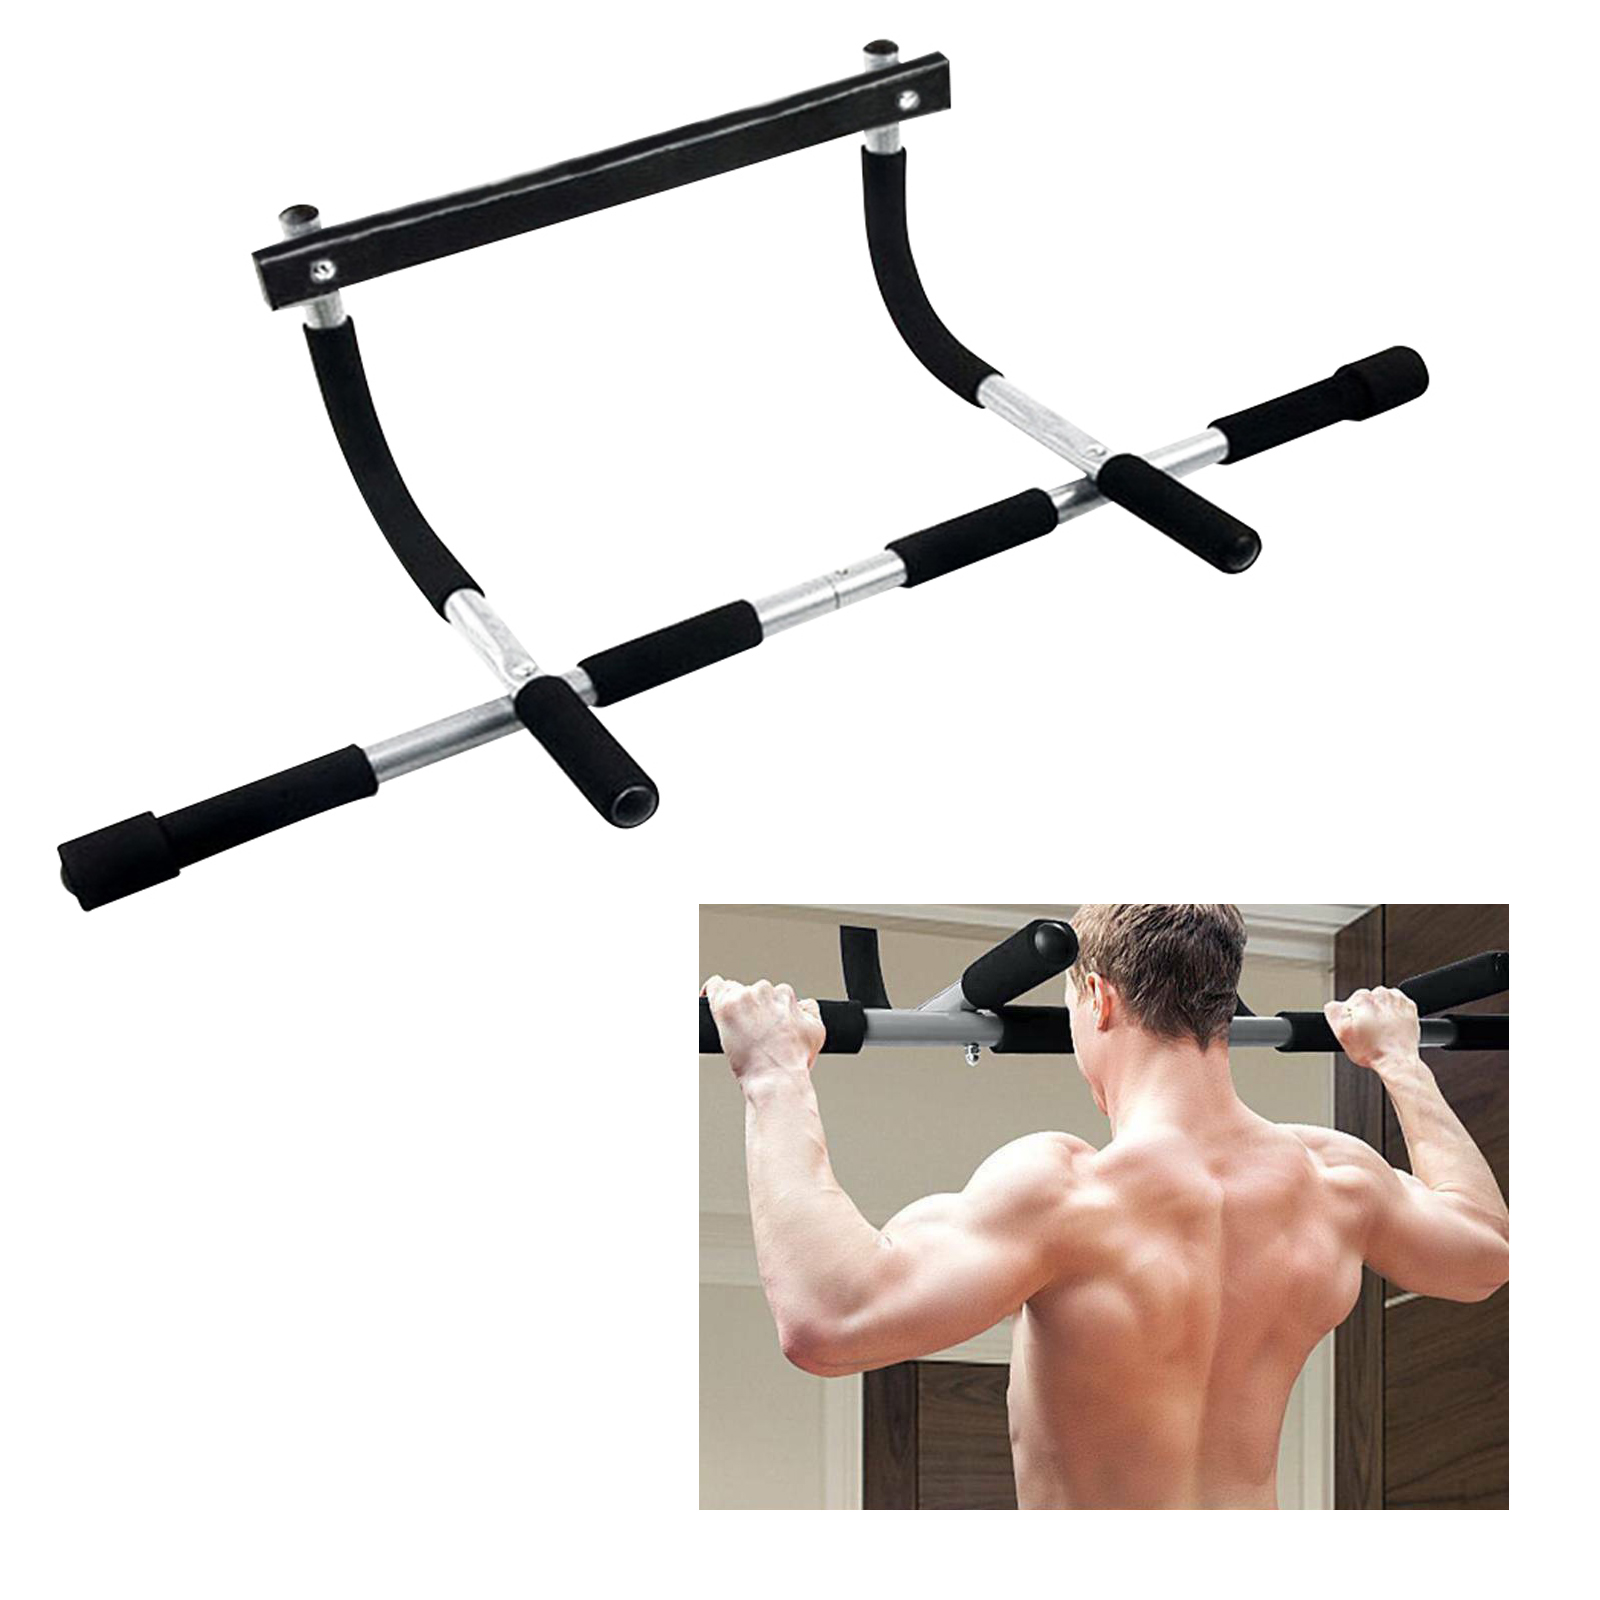 Indoor Fitness Horizontal Bar Workout Bar Chin-Up Pull-Up Bar Crossfit Sport Gym Equipment Home Fitness Equipment